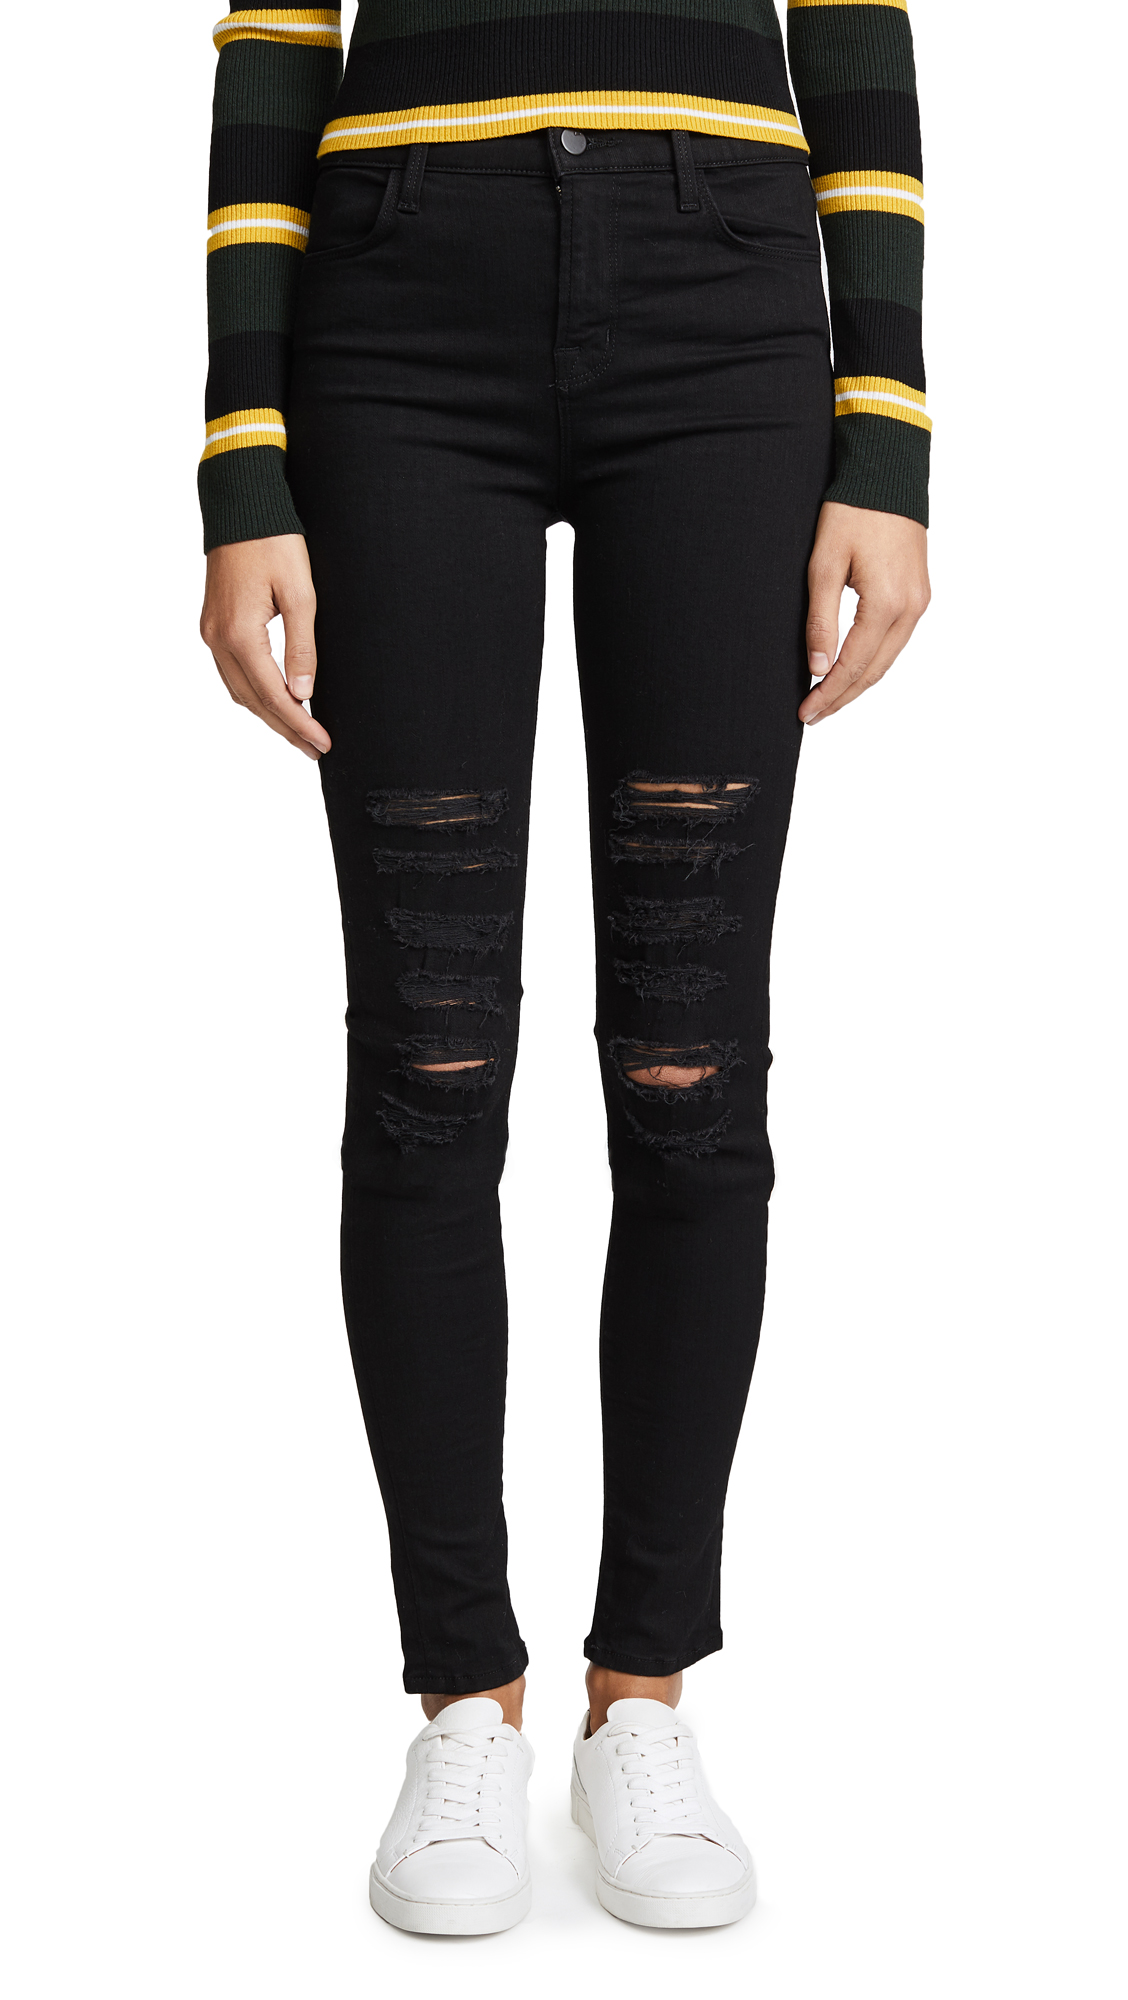 J Brand 23110 High Rise Photo Ready Maria Jeans - Black Heart